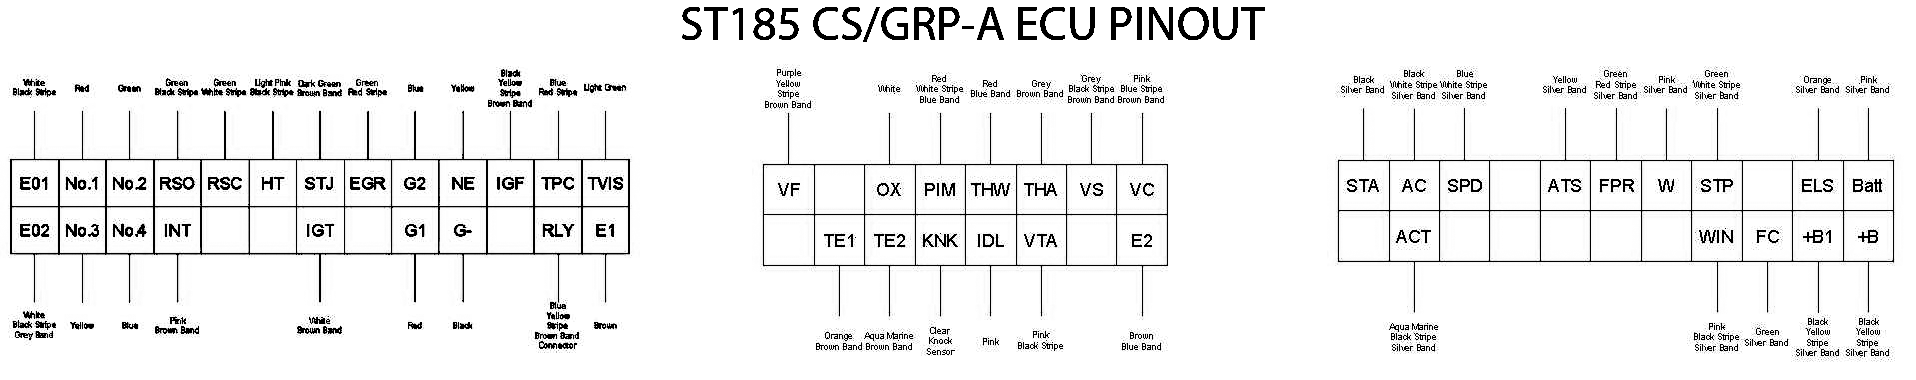 st185 cs/grp-a ecu diagram